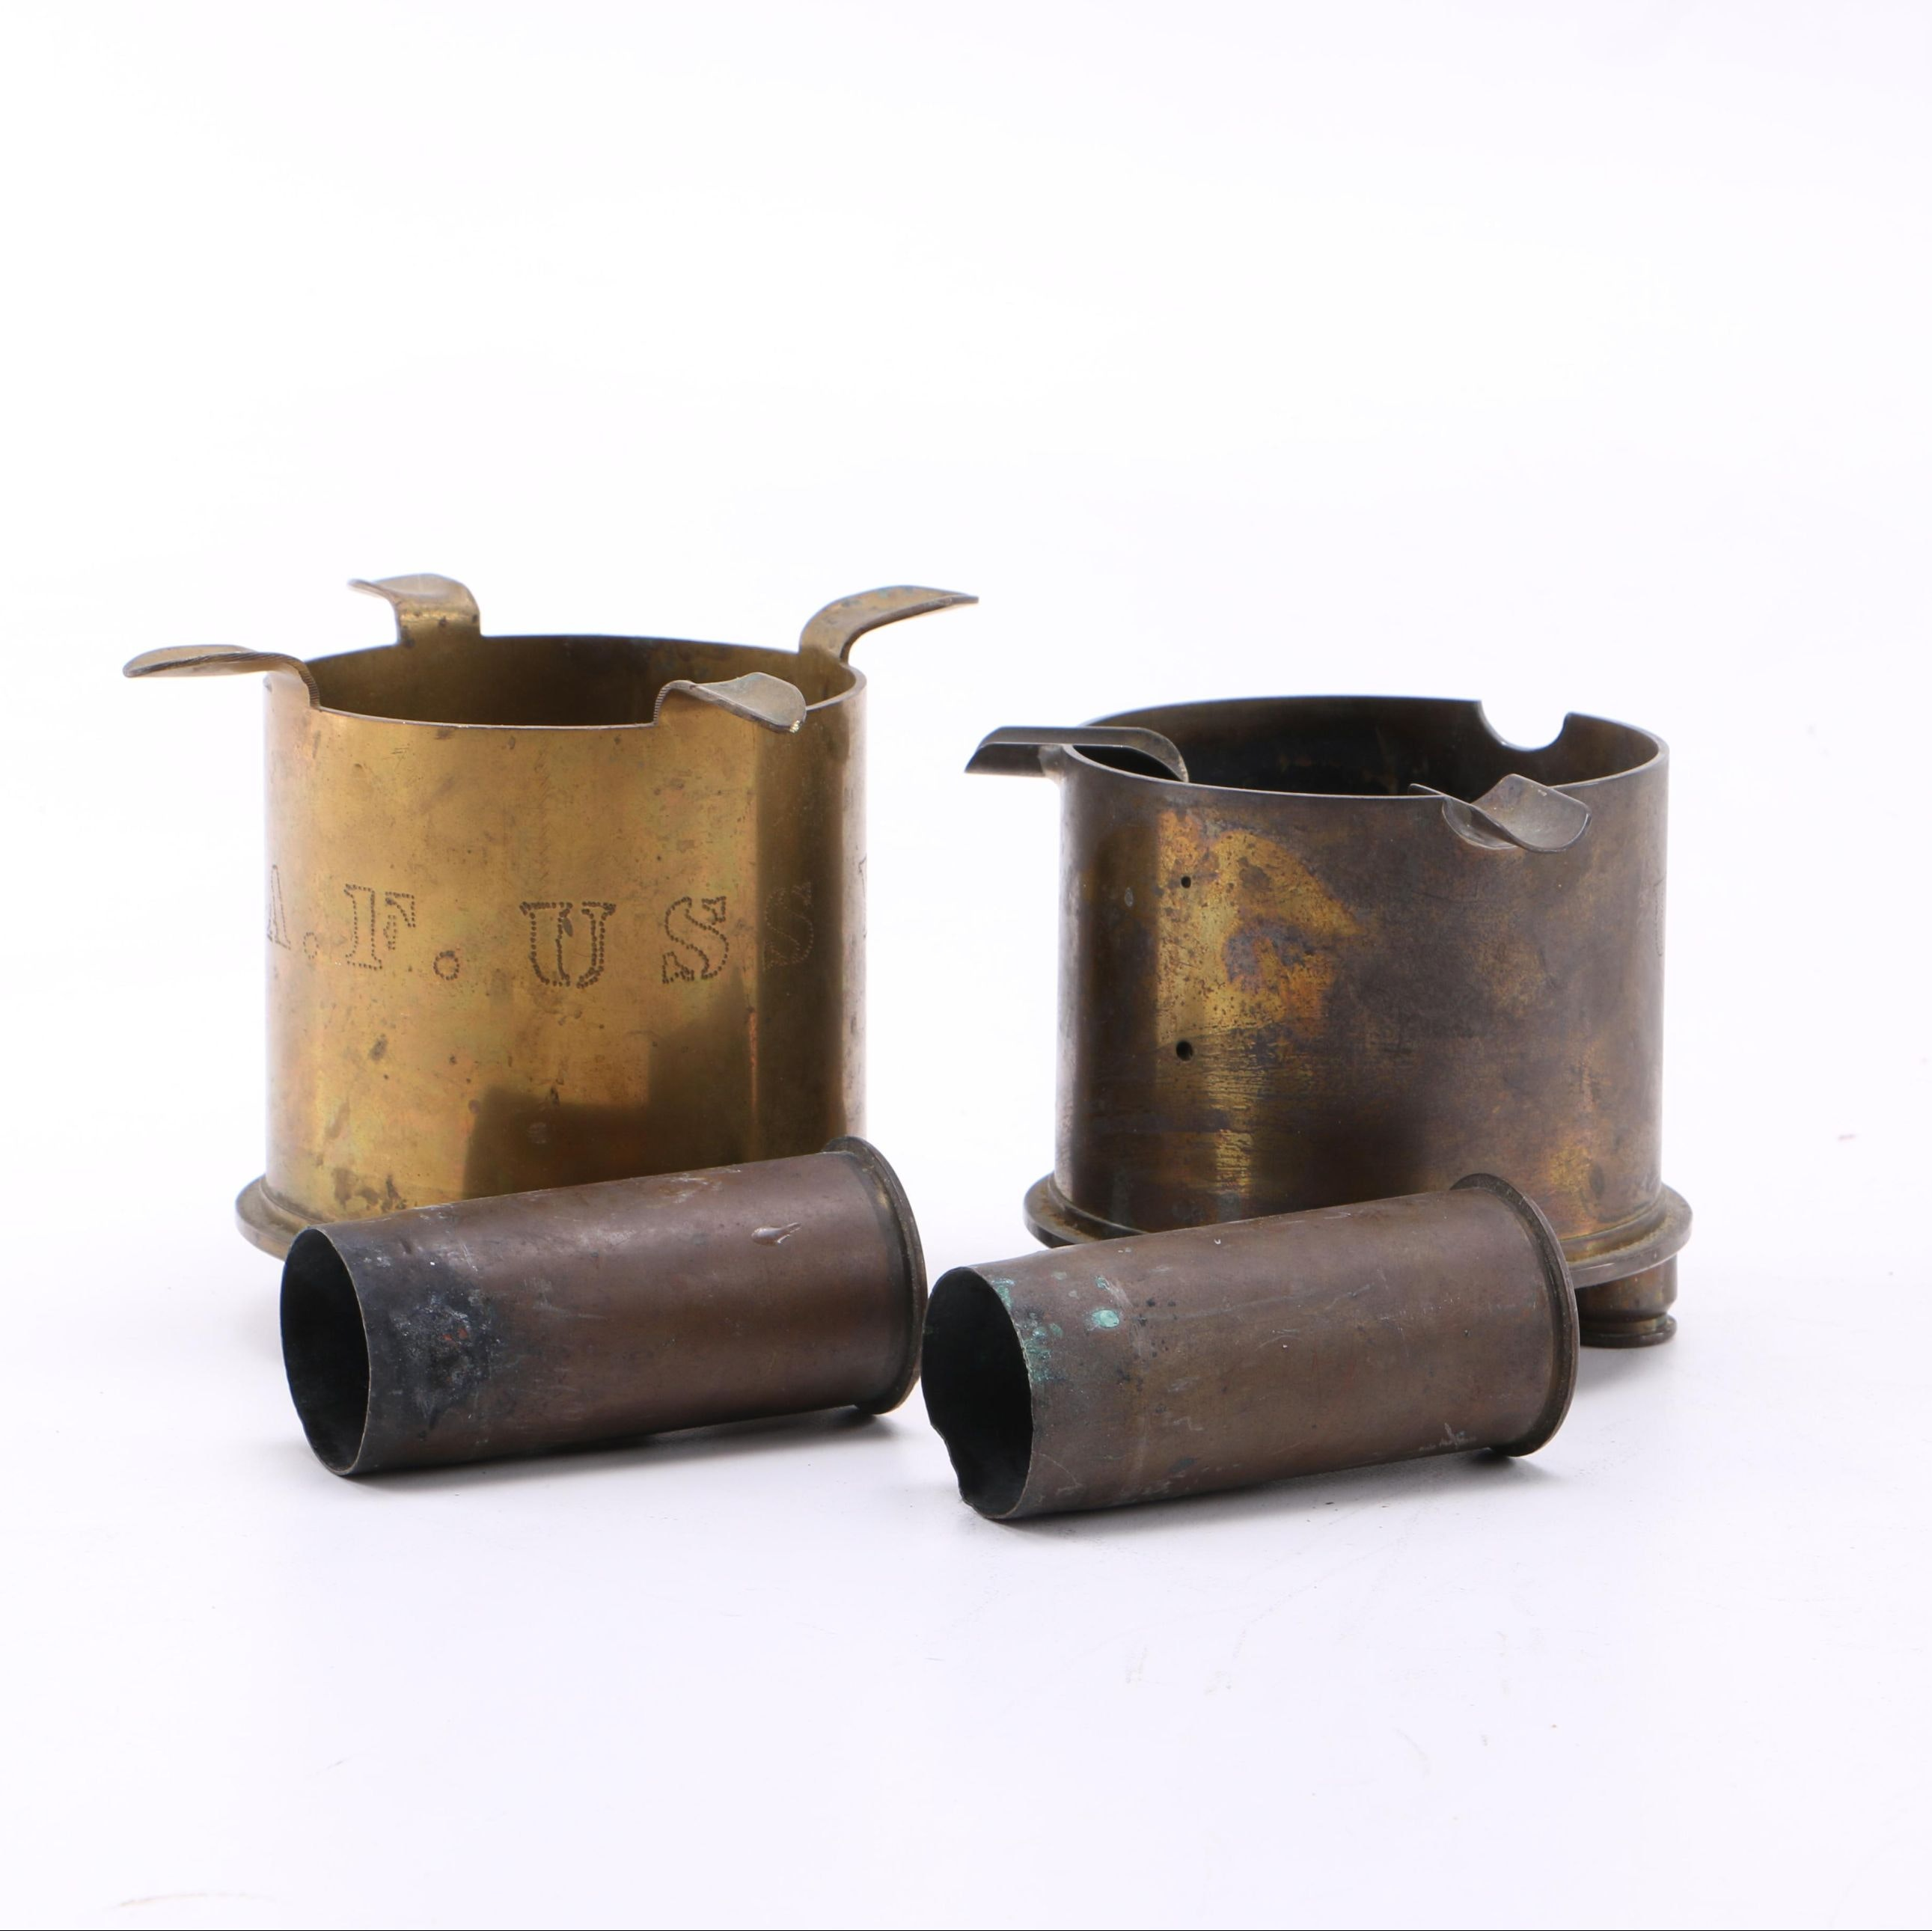 Trench Art Ash Receivers and Shell Casings